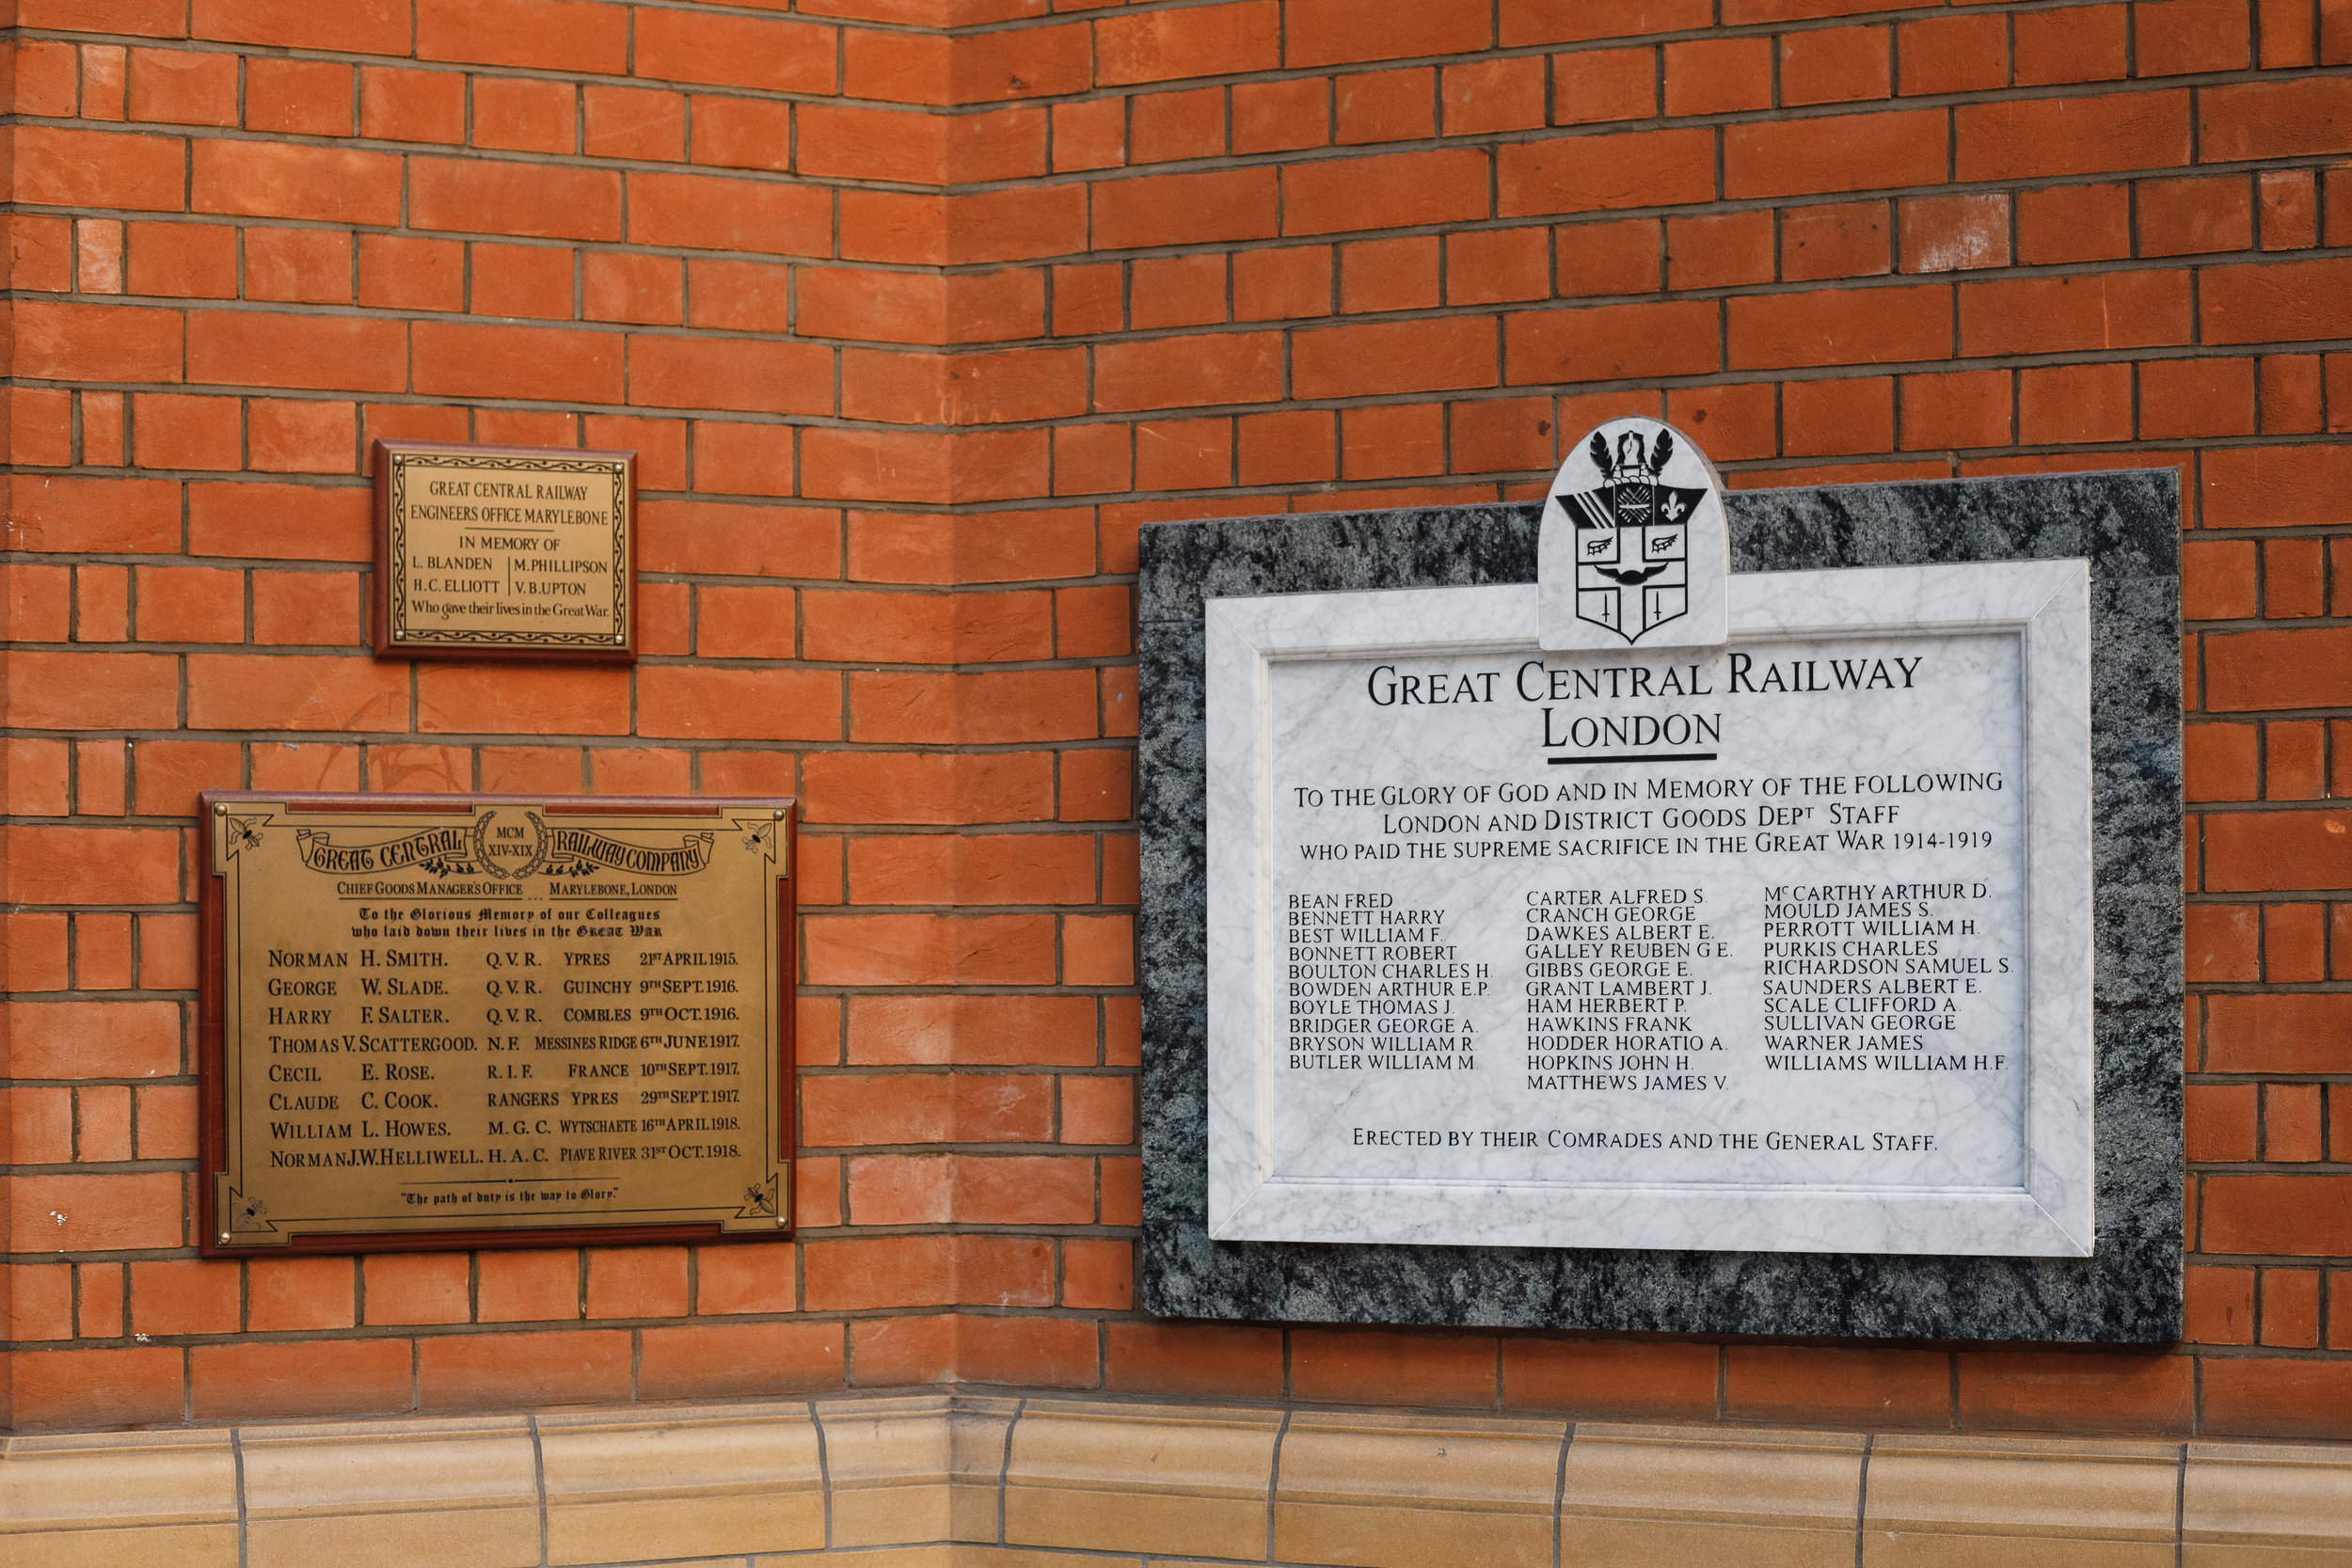 There are two memorial plaques at Marylebone Station to those who had worked on the railways.